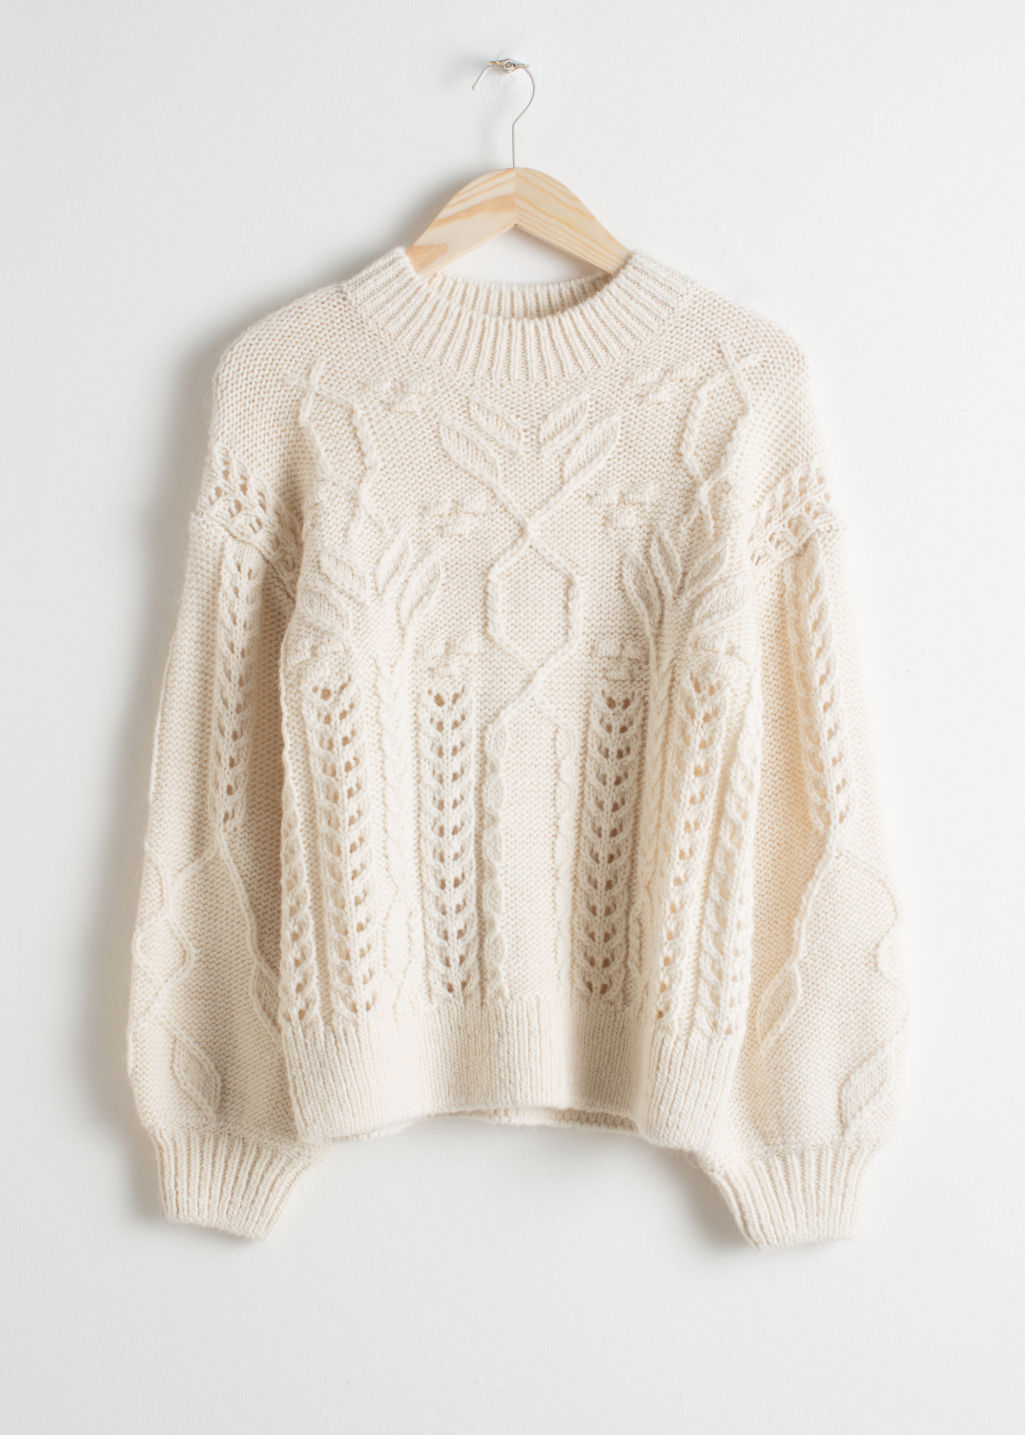 Floral Cable Knit Sweater - Cream - Sweaters - & Other Stories